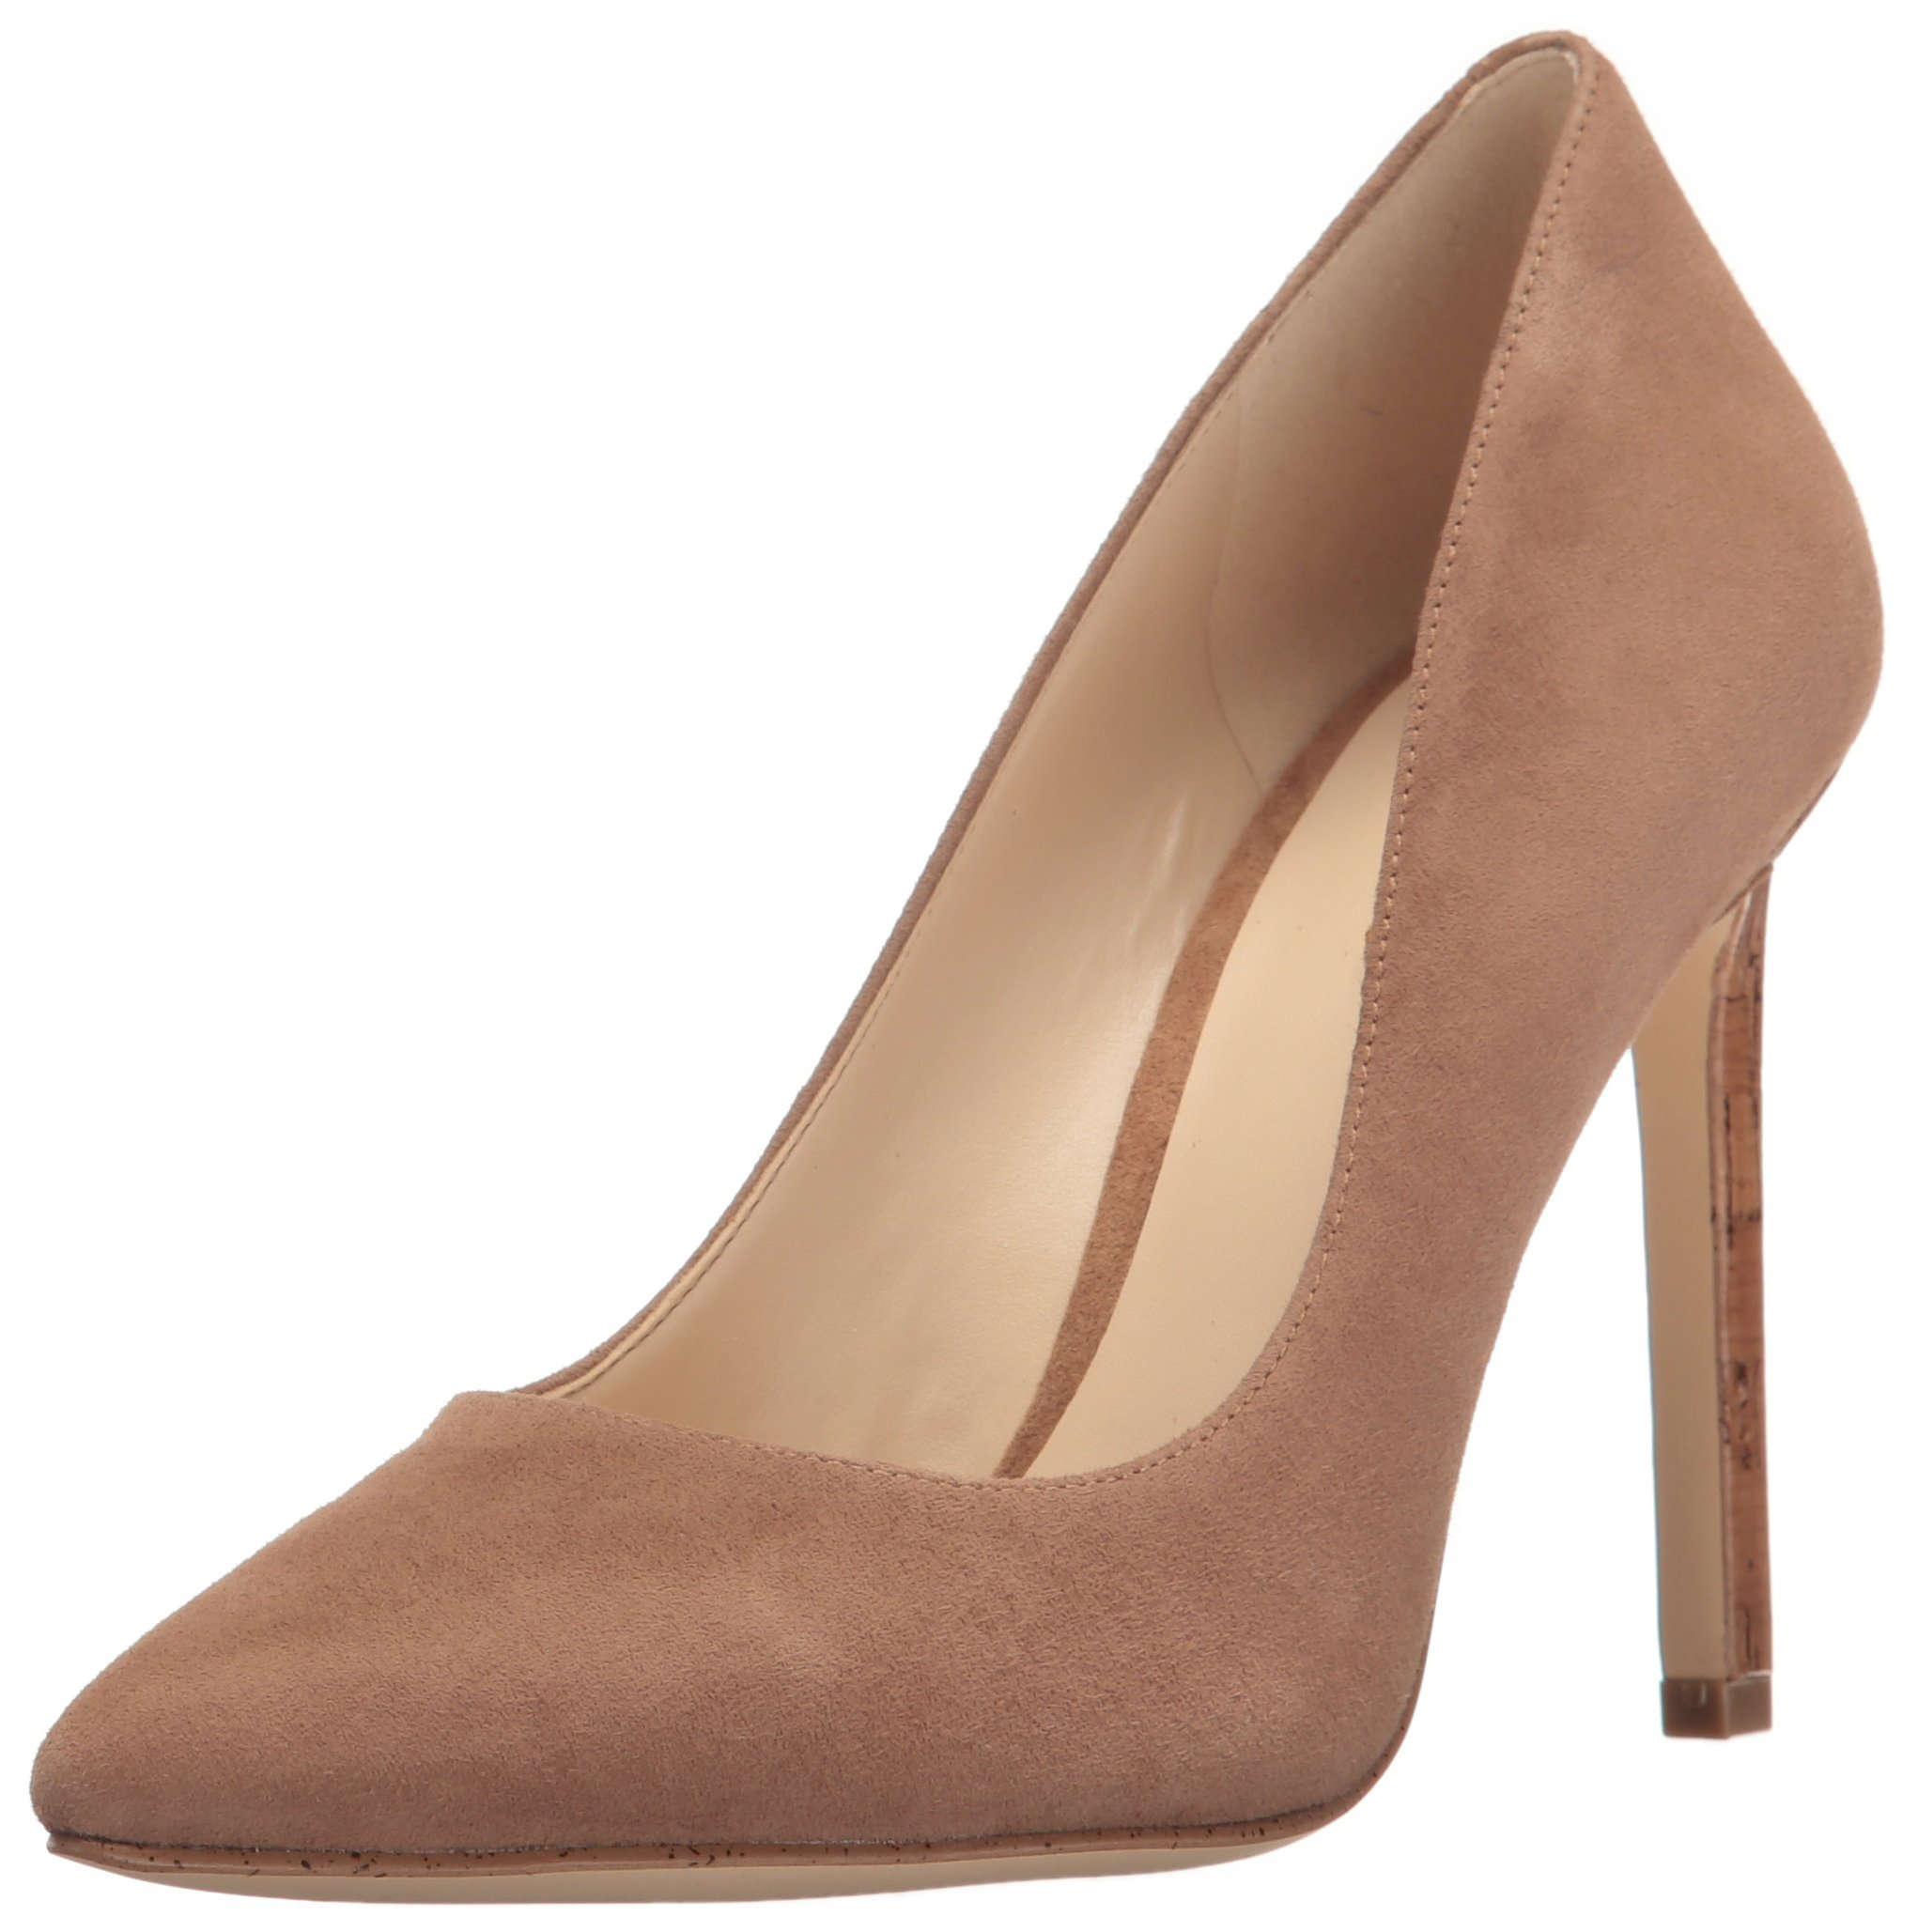 Nine West Women's Tatiana Suede Dress Pump, Dark Natural, 8 M US by Nine West (Image #1)